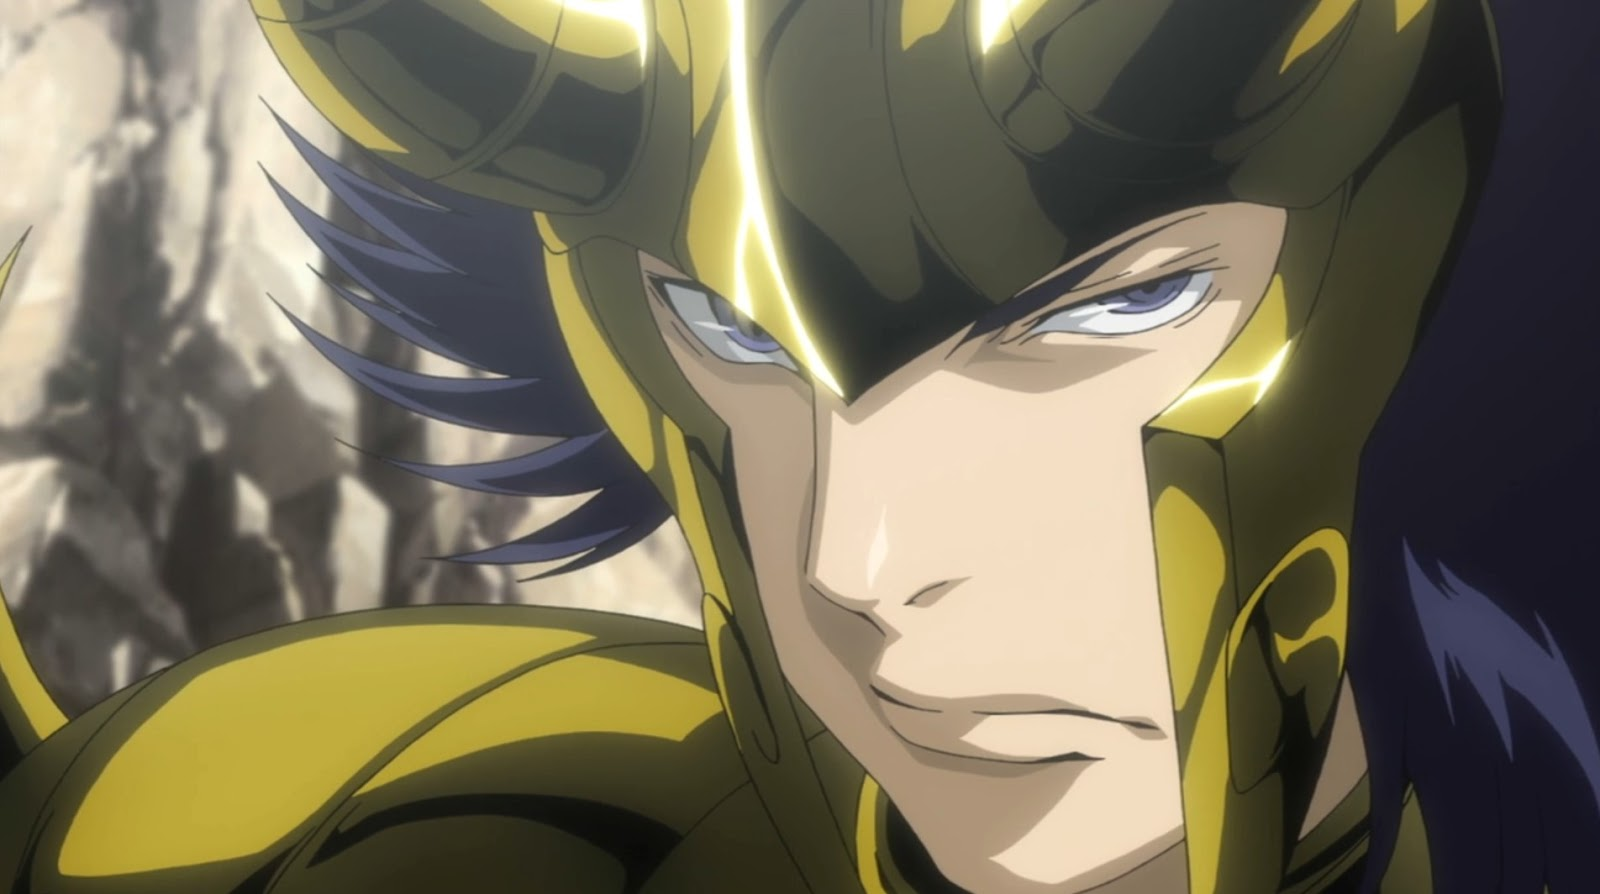 Saint Seiya: The Lost Canvas Episodio 19 Dublado